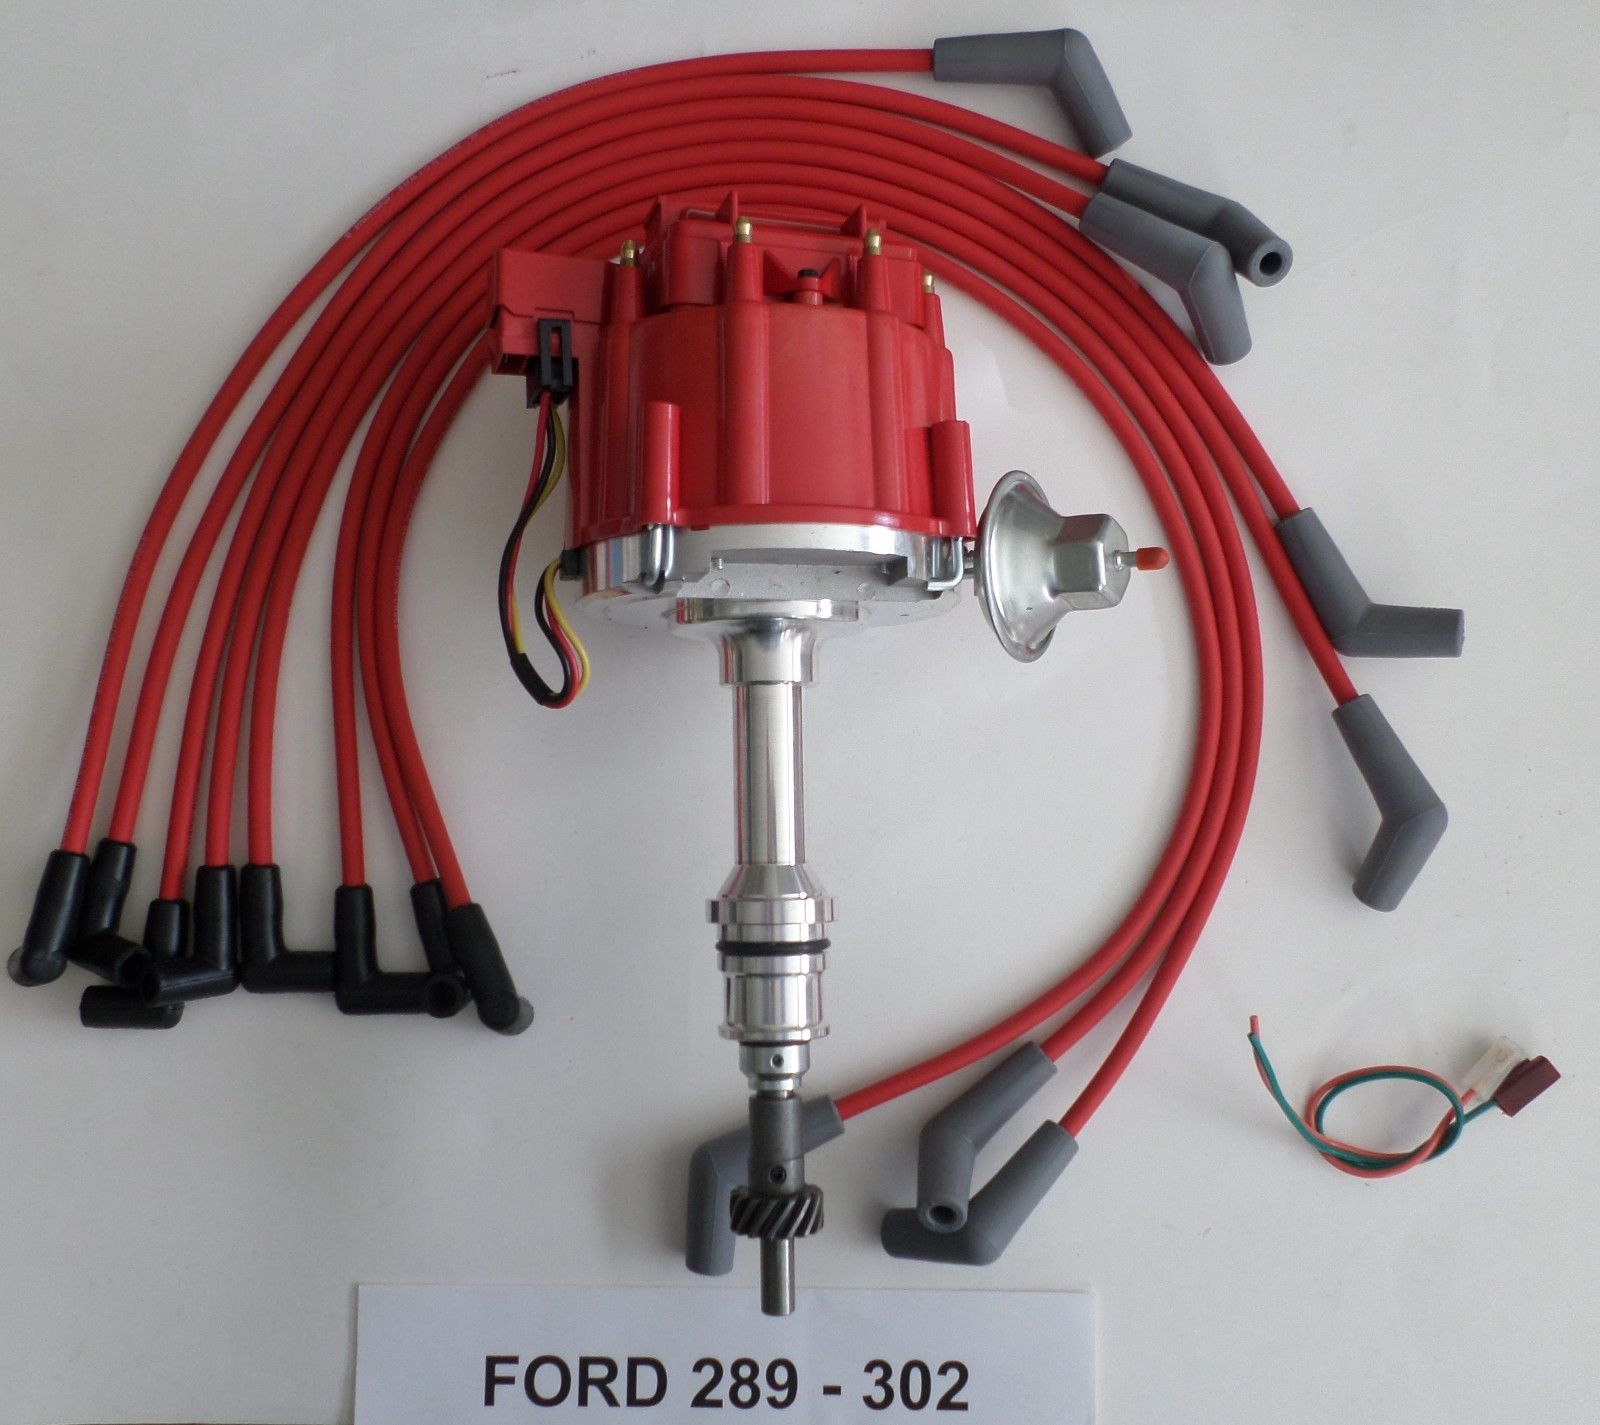 302 red hei distributor spark plug wires usa  🔍  red